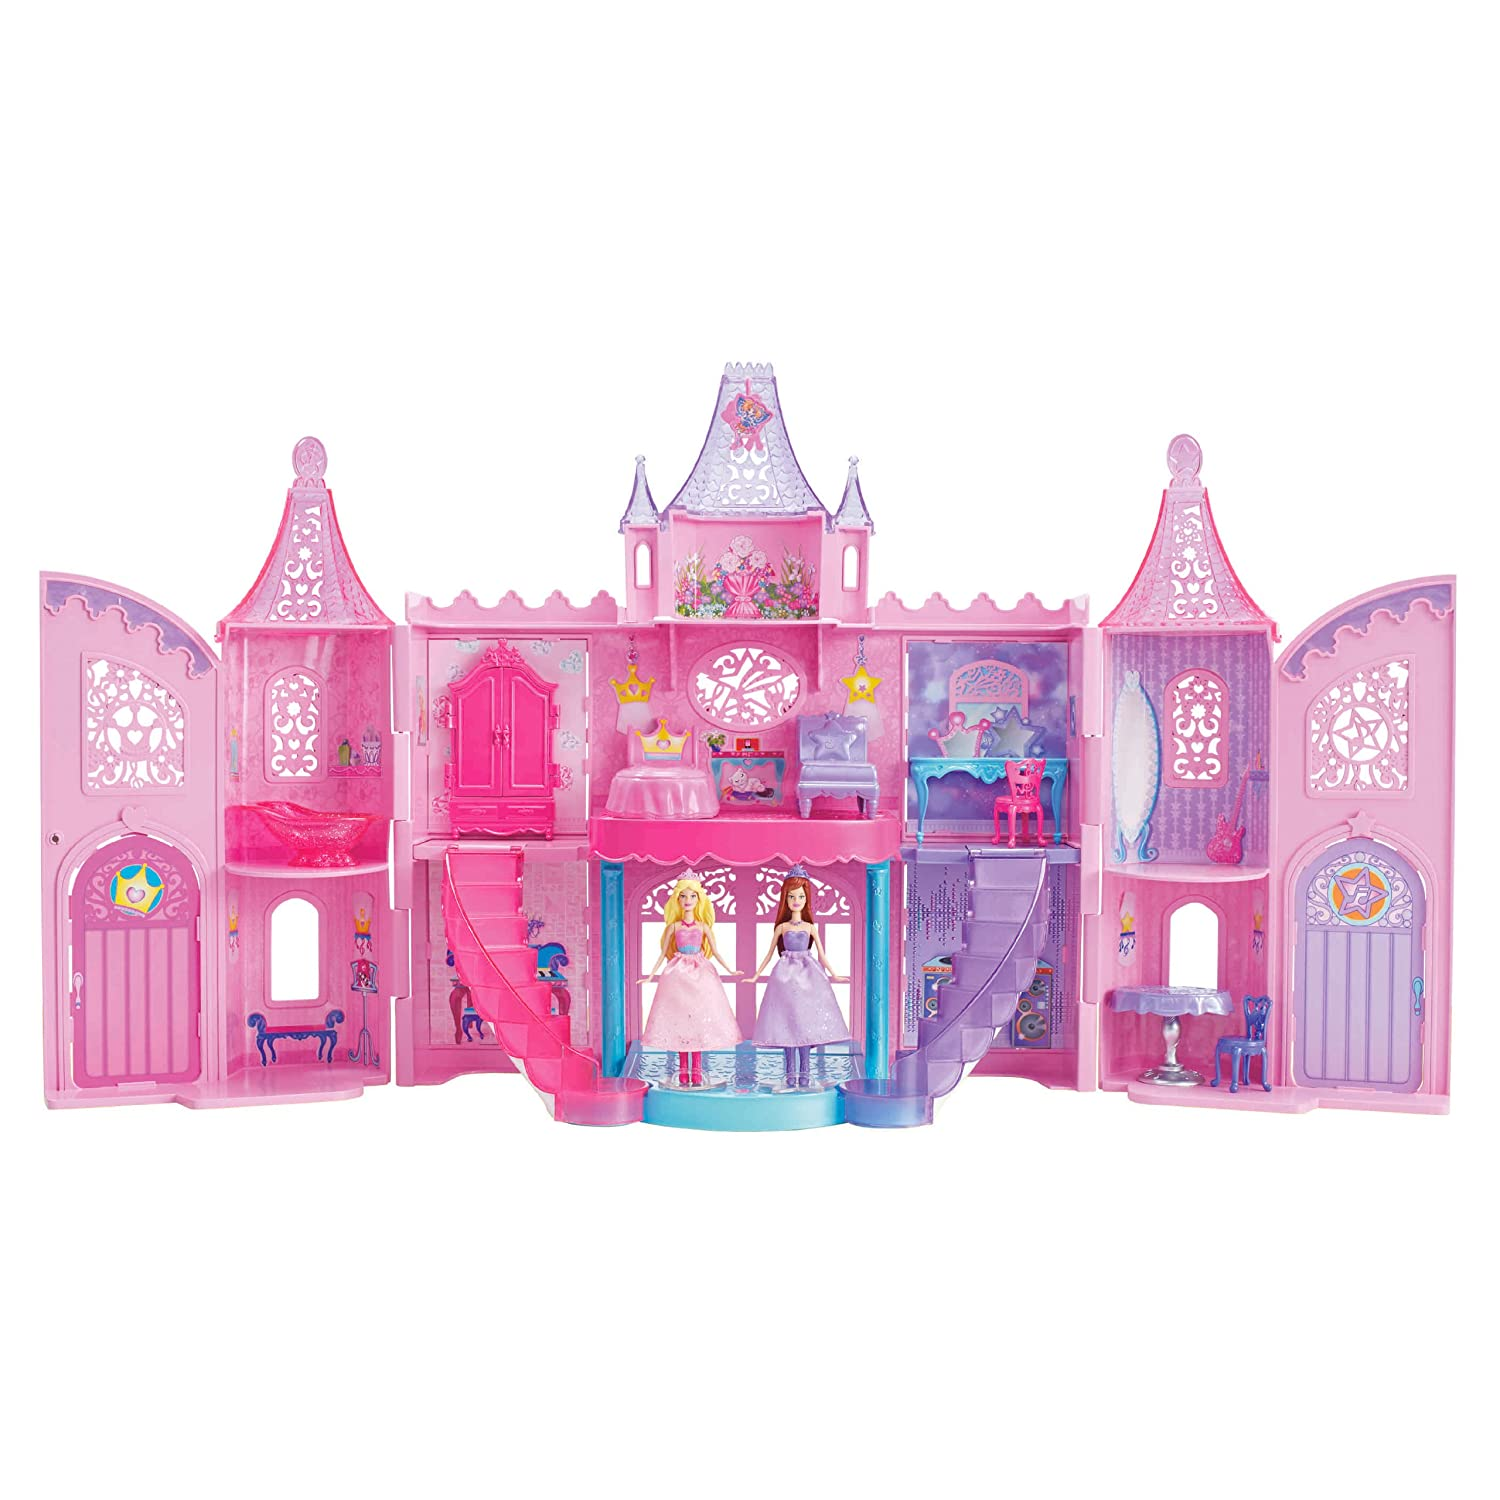 Dolls house at argos co uk your online shop for dolls houses dolls - 10 Doll House Family Room Furniture For Bjd Simba Lica Barbie Doll House